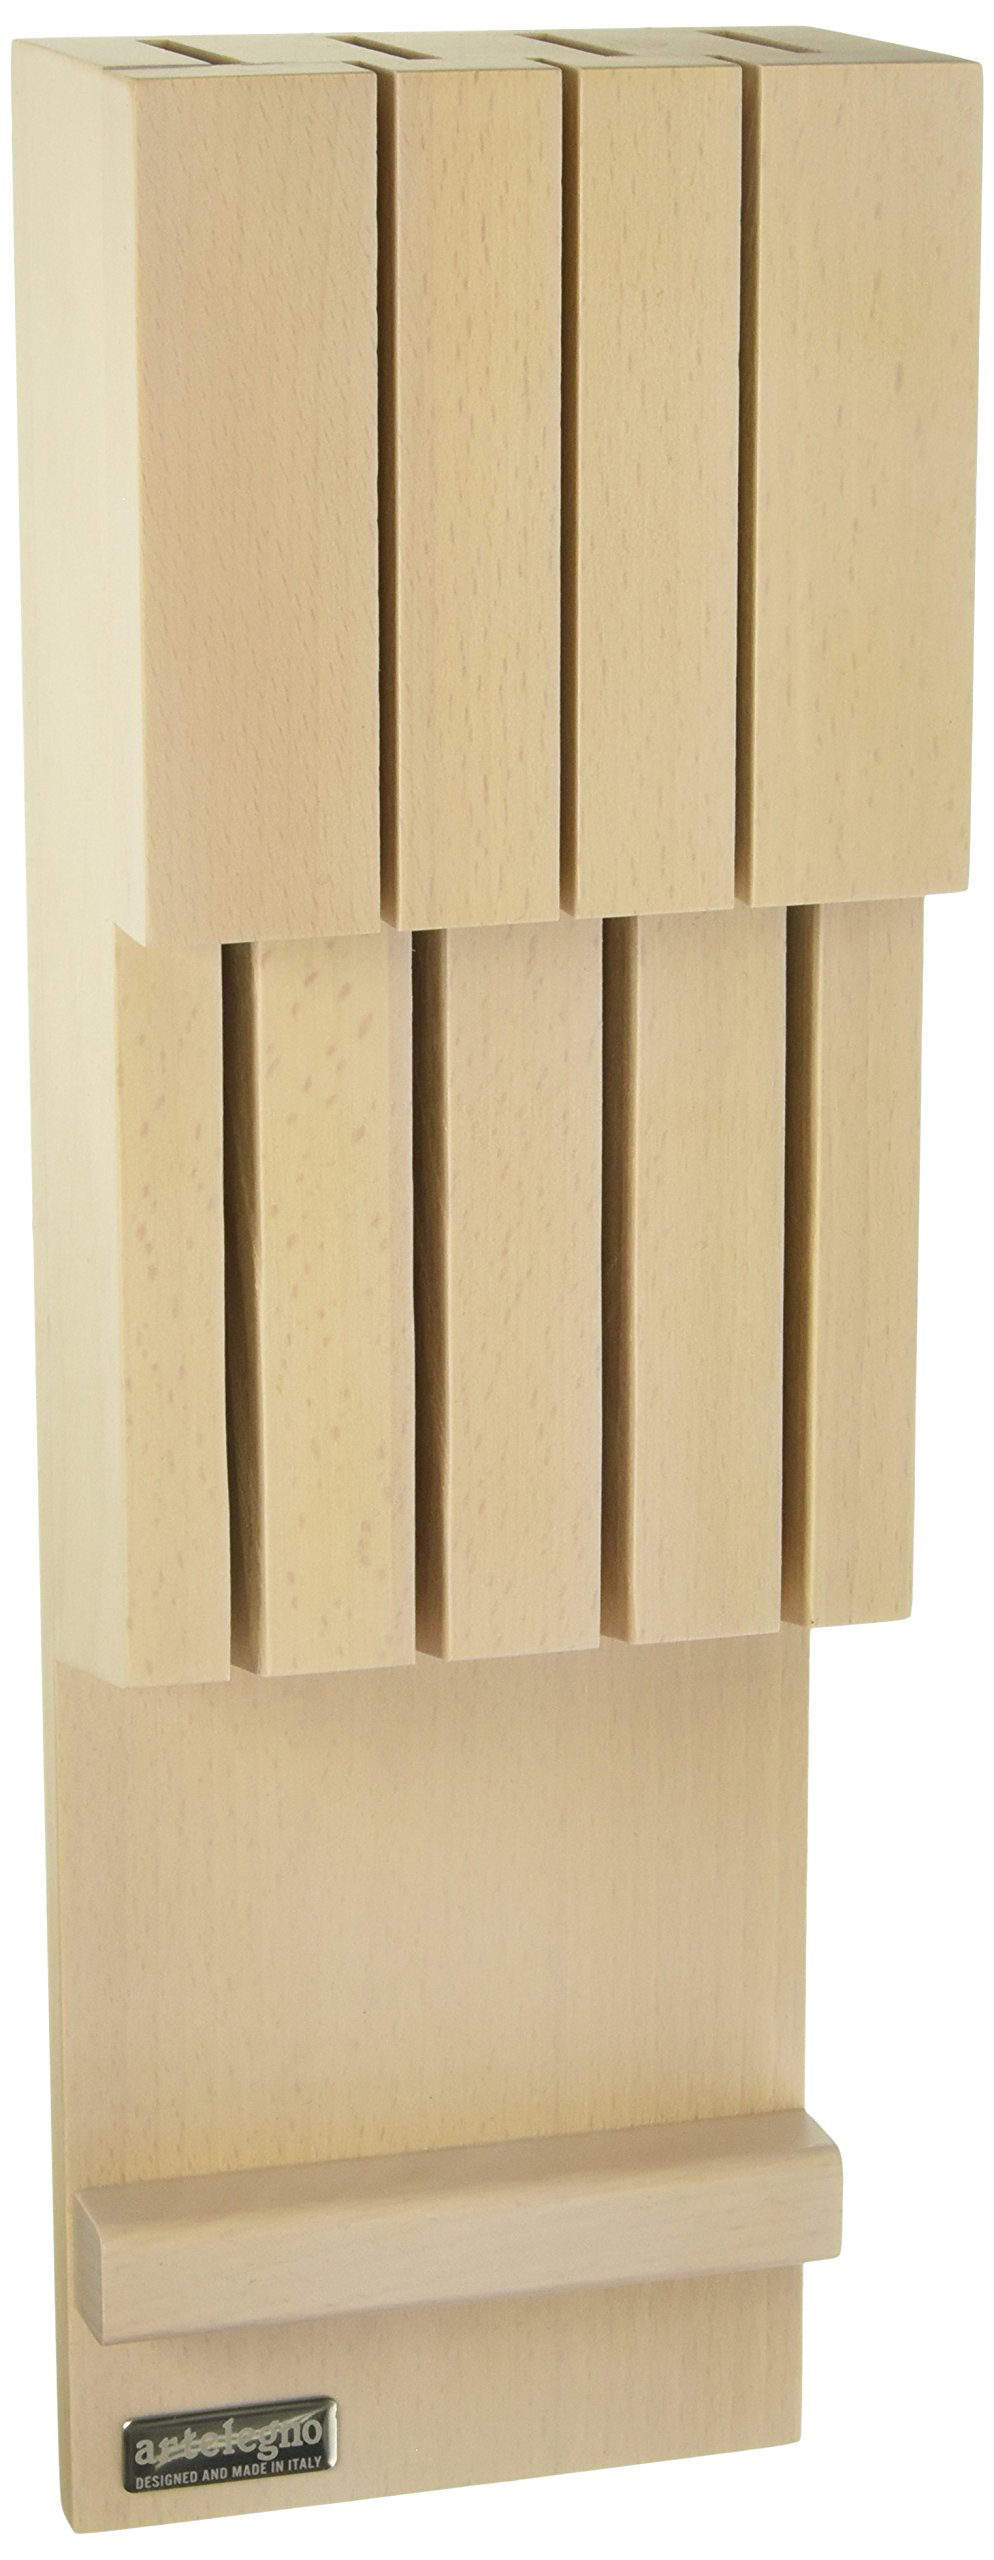 Artelegno Solid Beech Wood 7 Slot Drawer Knife Block, Luxurious Italian Collection by Master Craftsmen Stores High-End Knives Safely, Eco-friendly for Blades up to 9.6'' - Whitewashed Finish